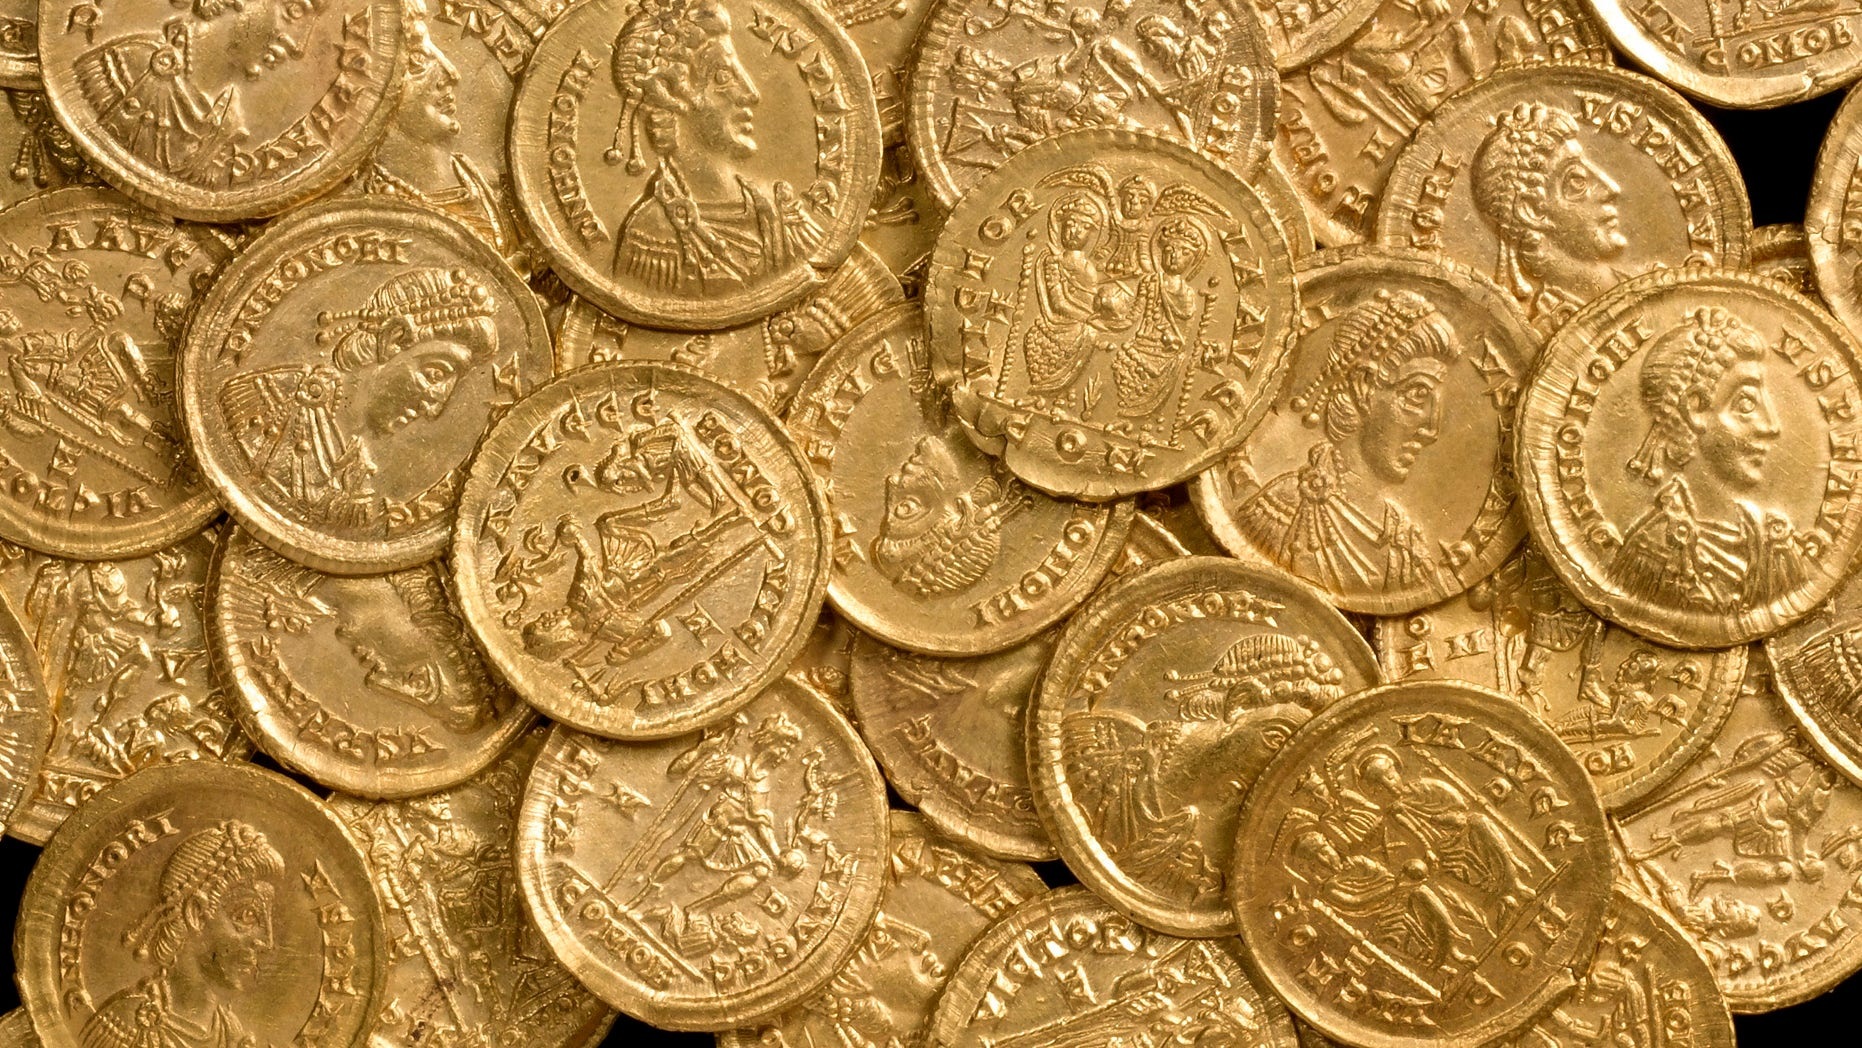 Oct. 17, 2012: In this undated photo released by St Albans City and District Council, late Roman gold coins, examples of the solidus, a high-value coin struck in the late fourth century, are photographed before going on display at the Verulamium Museum, St Albans, England. A curator at the museum says the coins, found on private land north of St. Albans, would have been used for major transactions such as buying land or ship cargoes.